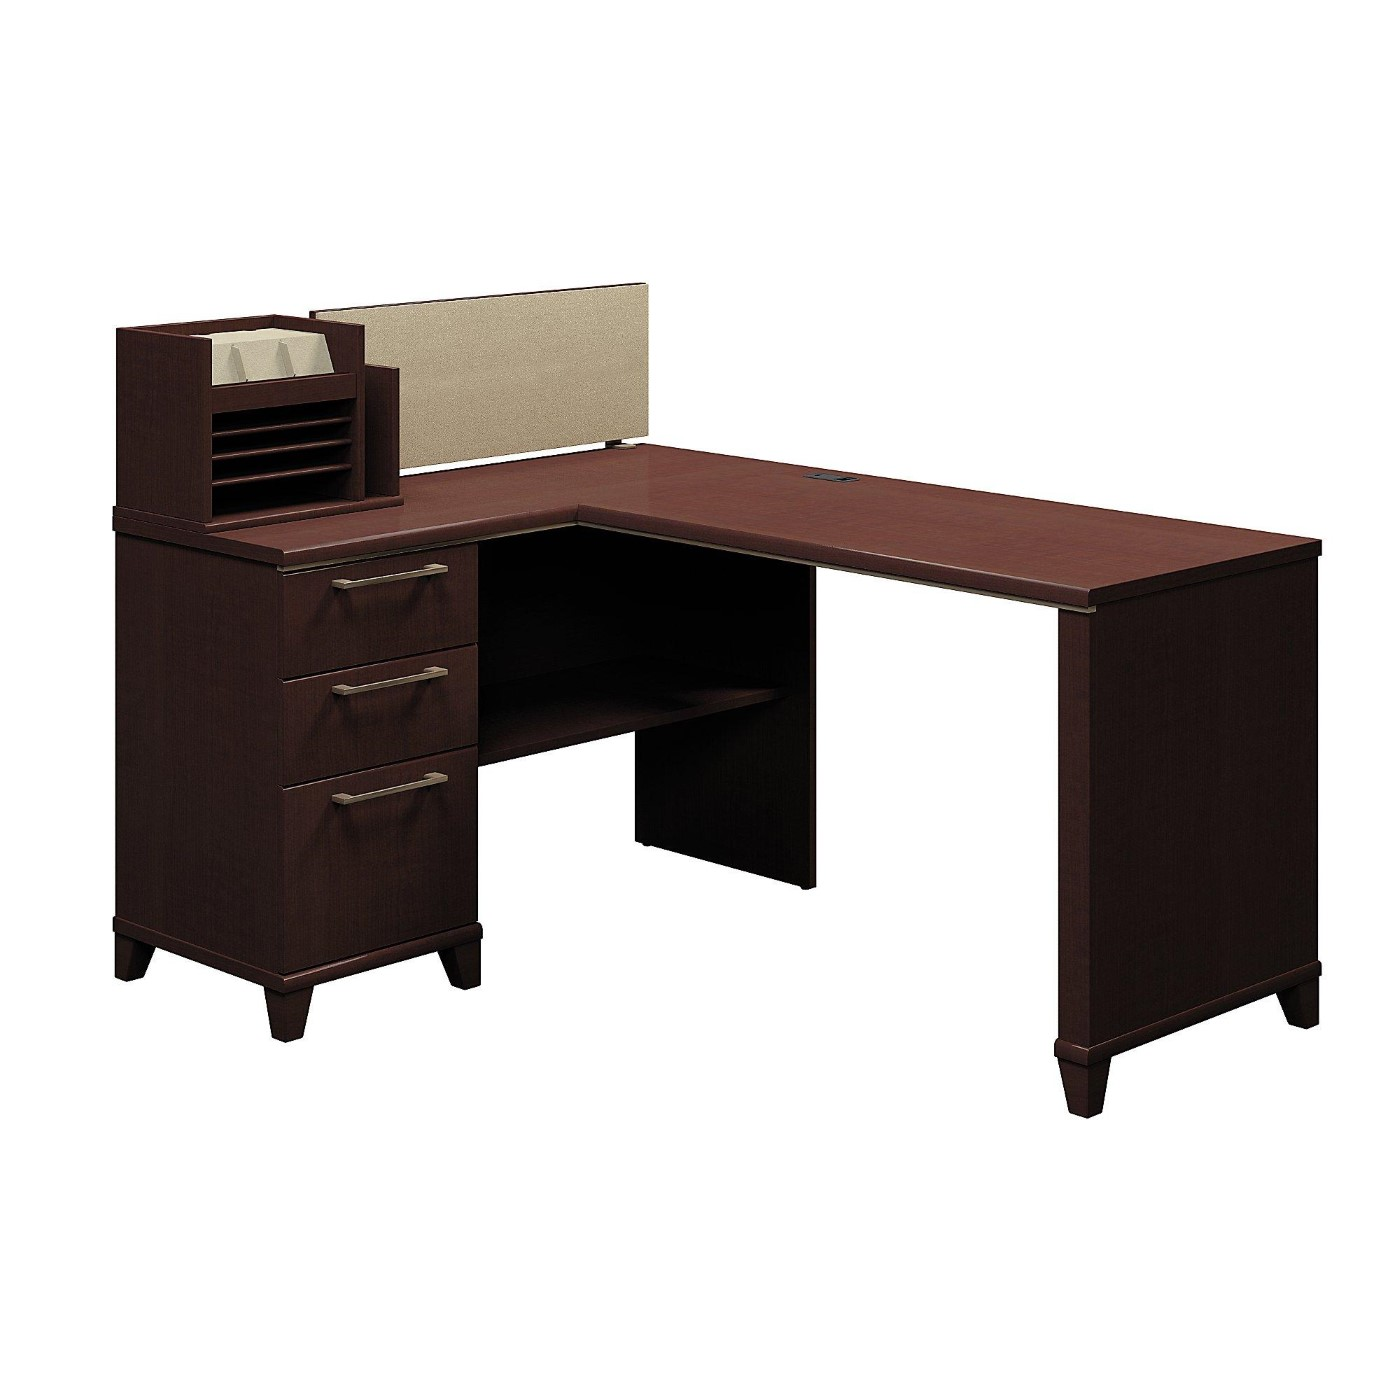 BUSH BUSINESS FURNITURE ENTERPRISE 60W X 47D CORNER DESK. FREE SHIPPING</font></b></font>&#x1F384<font color=red><b>ERGONOMICHOME HOLIDAY SALE - ENDS DEC. 17, 2019</b></font>&#x1F384